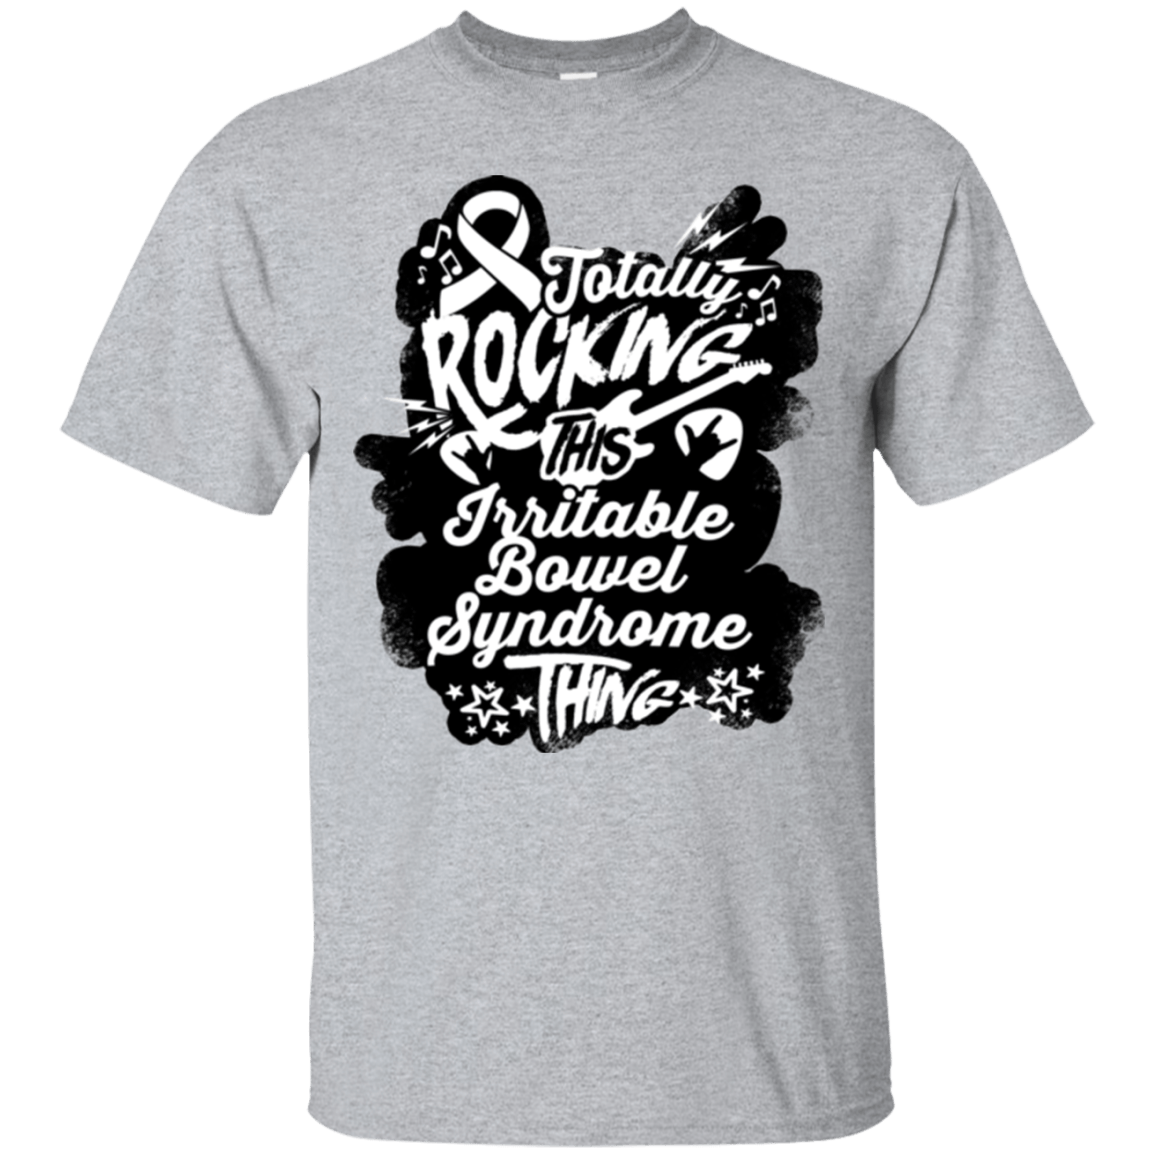 T-Shirts - Rocking Irritable Bowel Syndrome Unisex Shirt